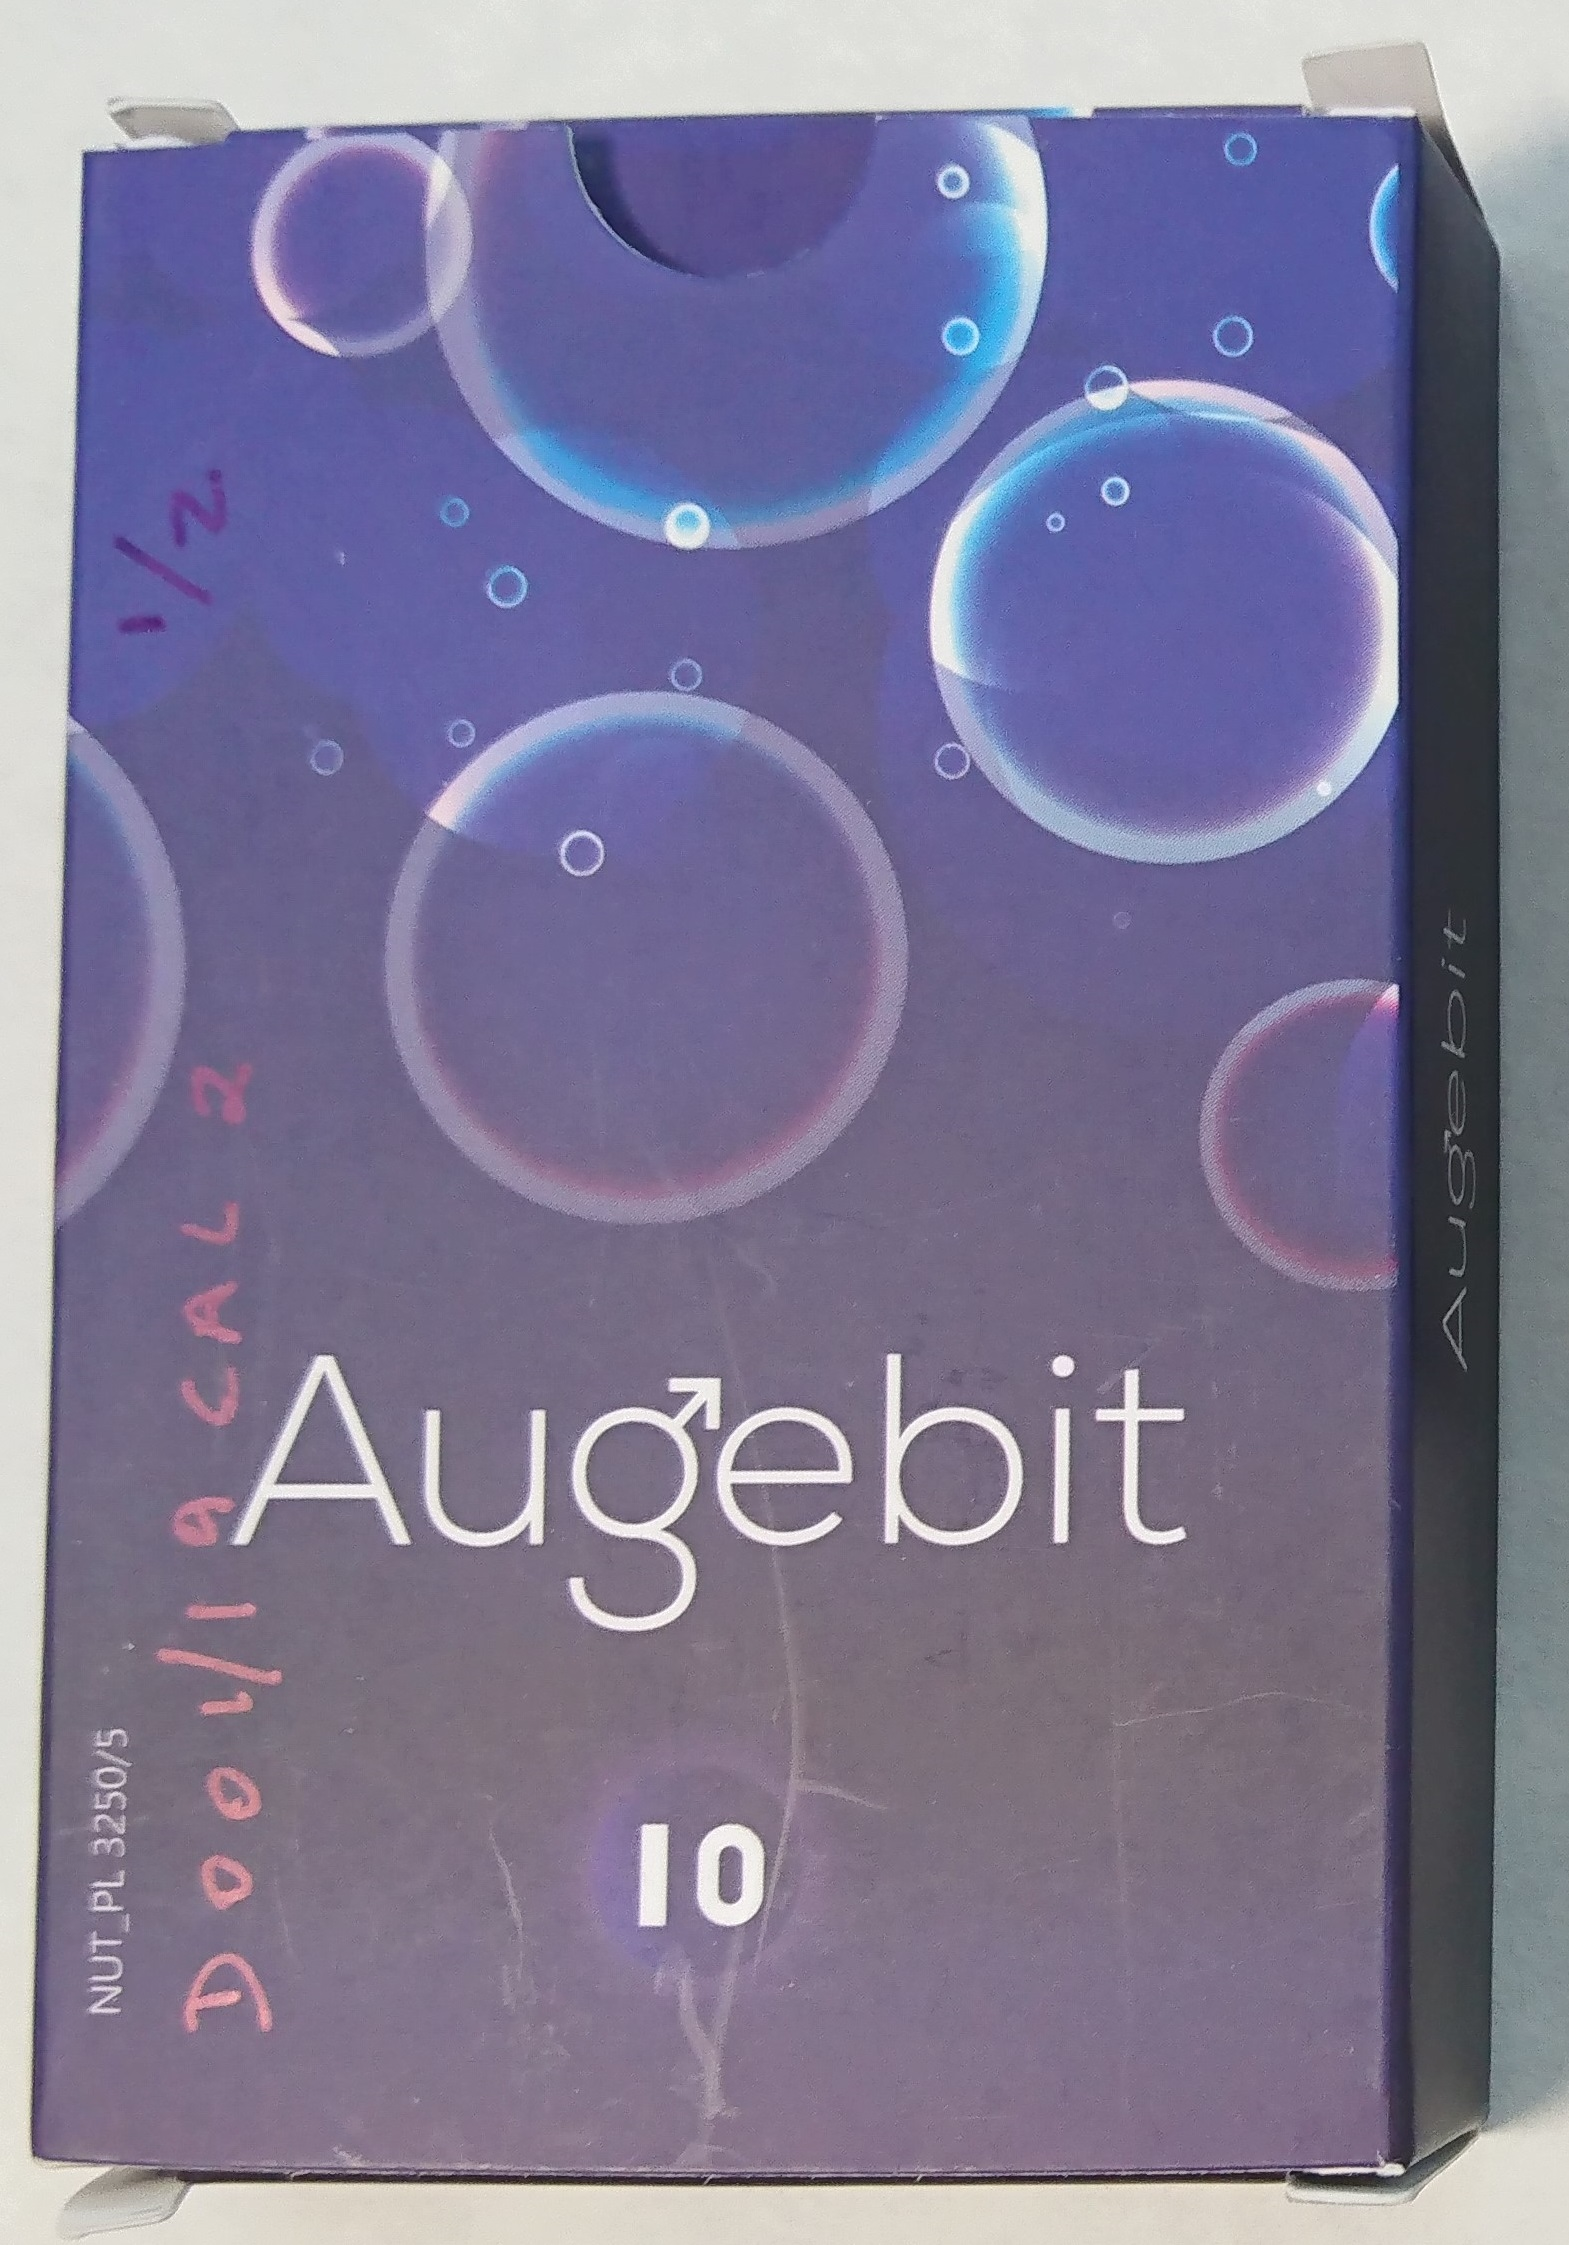 Image of the illigal product: Augebit 10